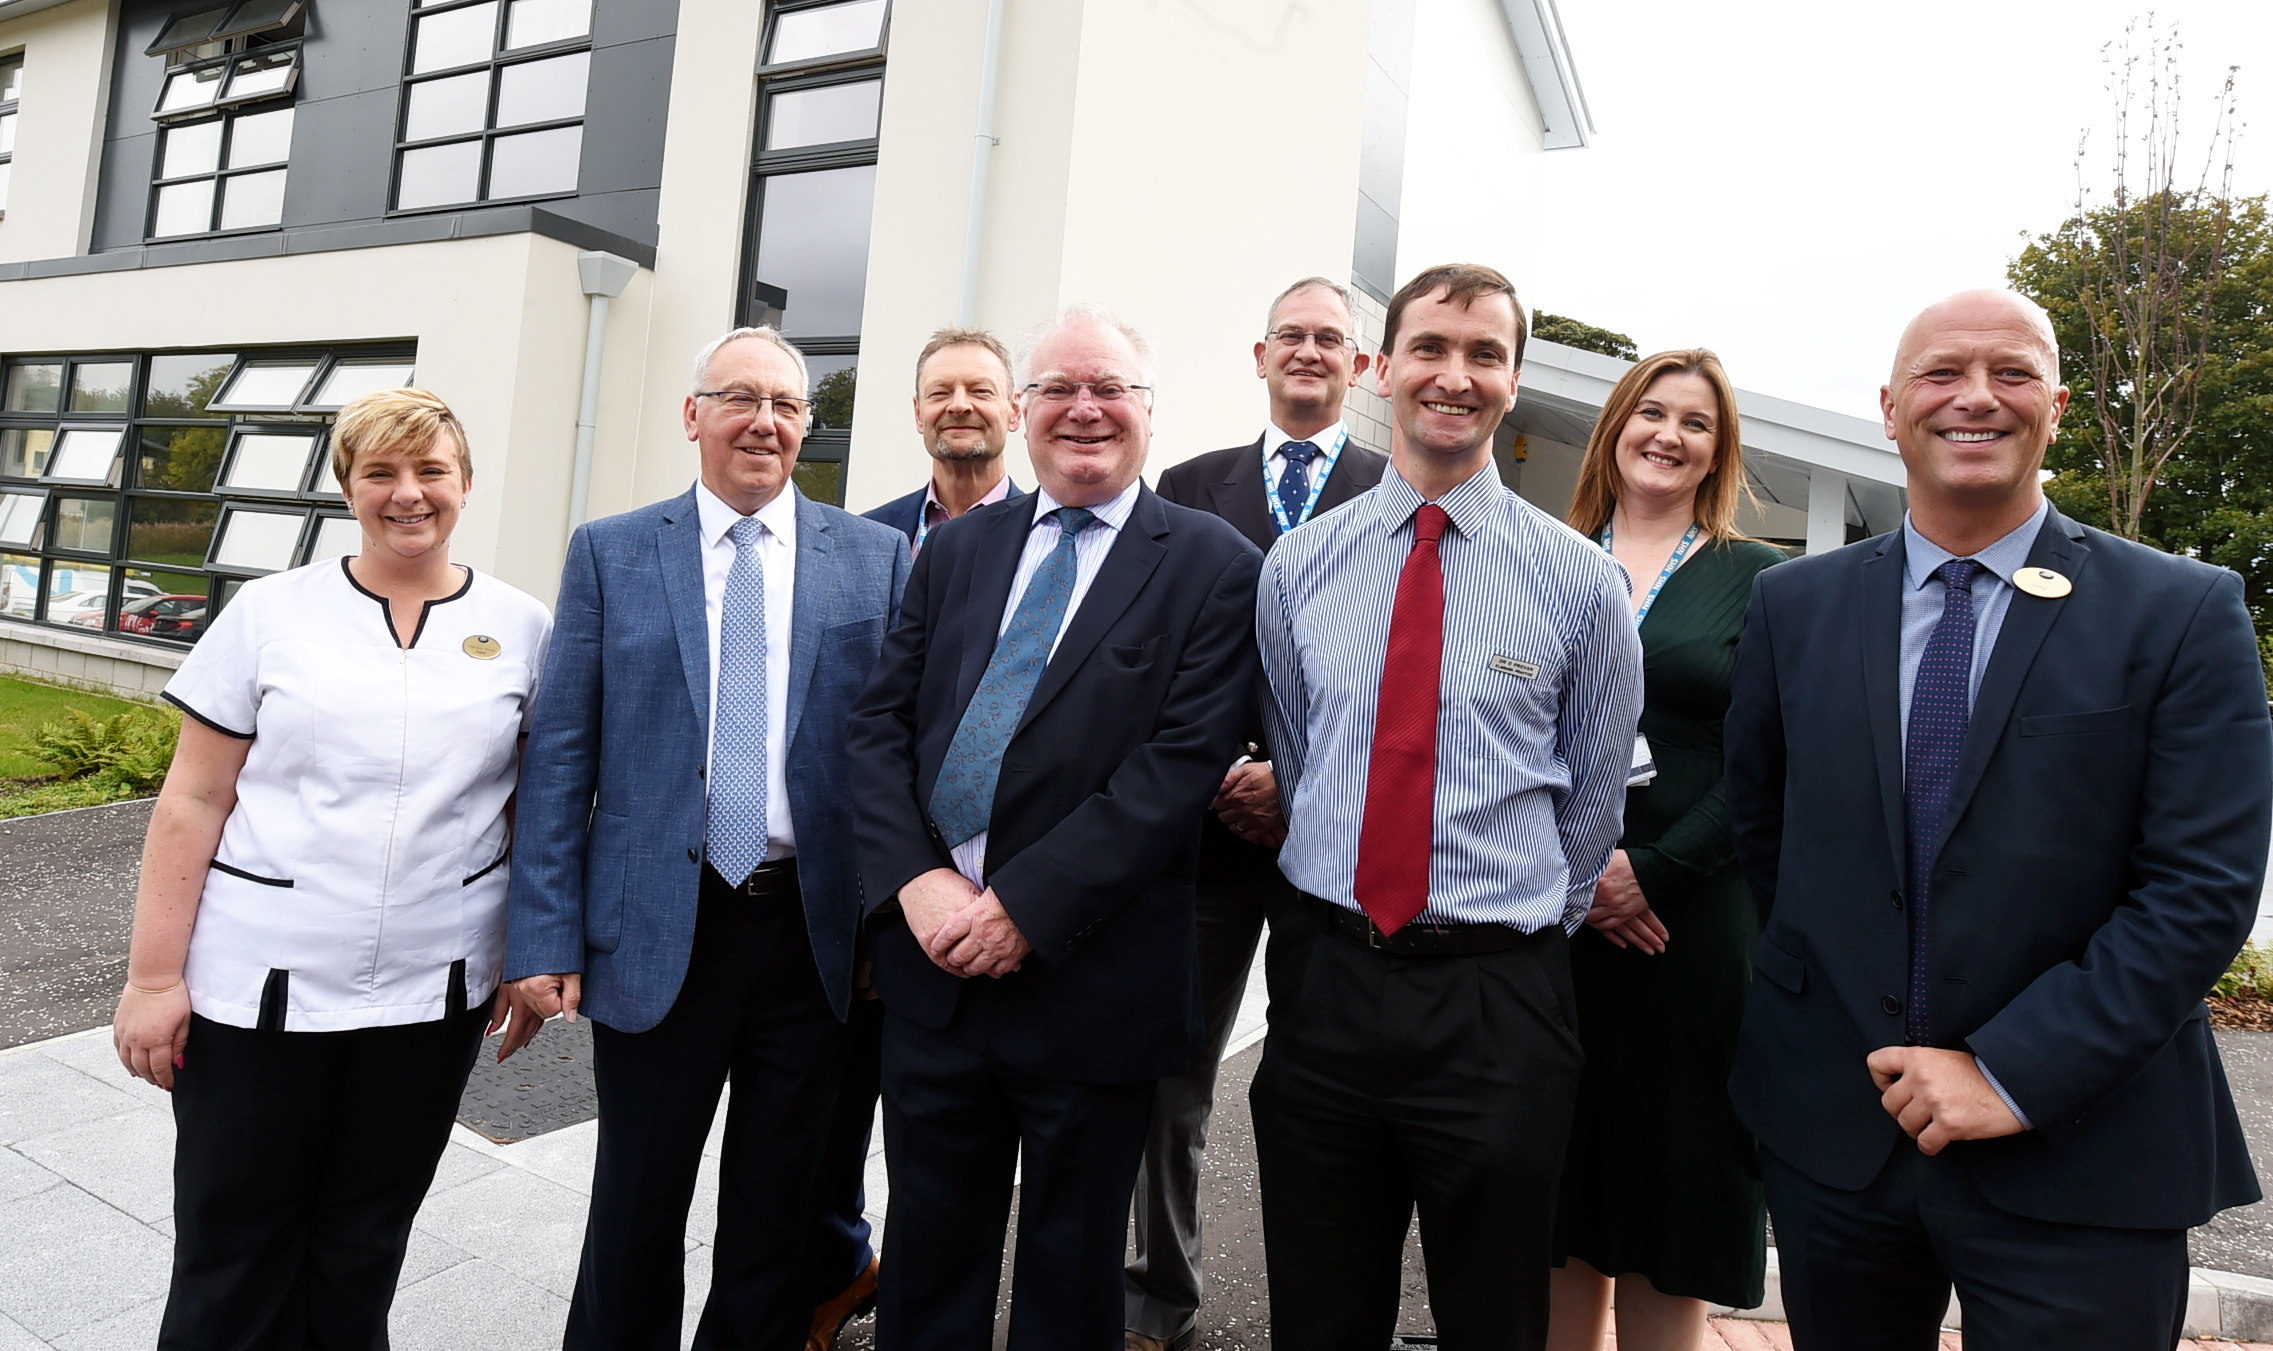 The opening of the new Forresterhill Health Centre, Aberdeen